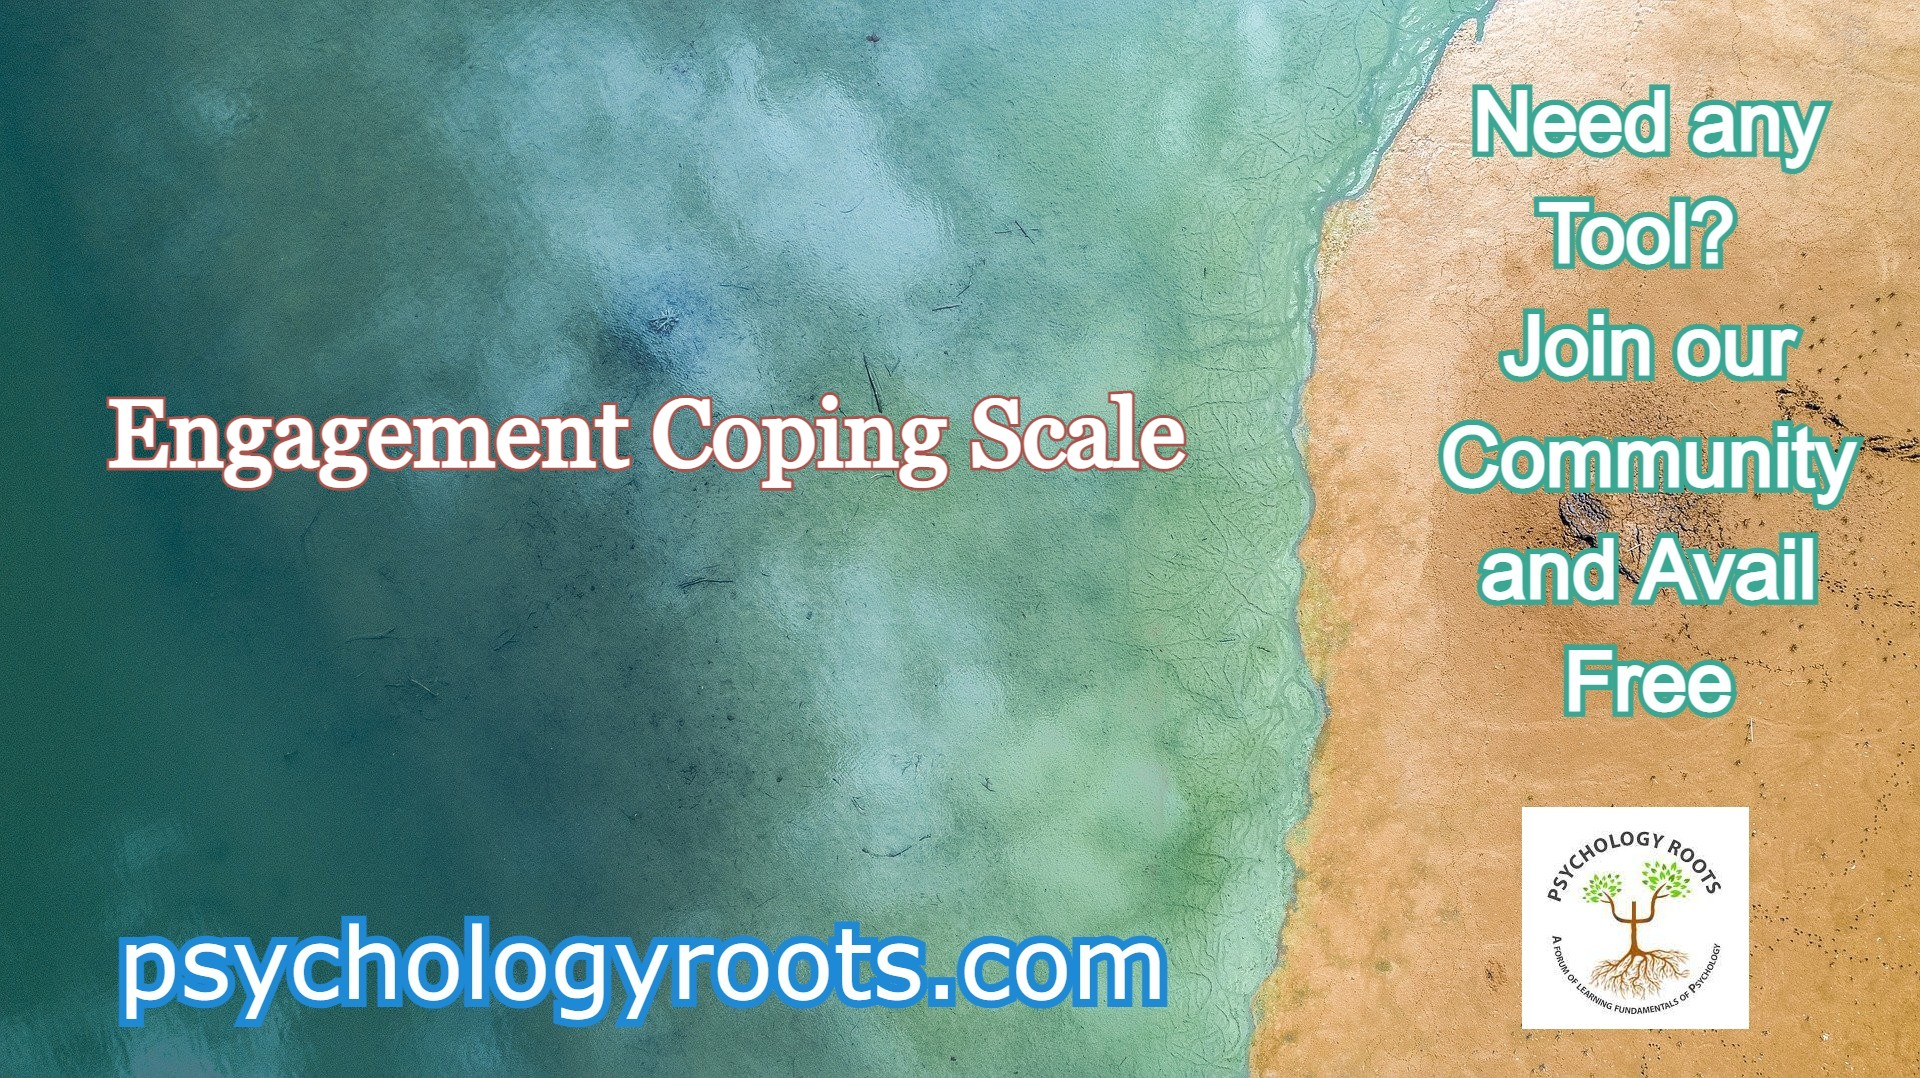 Engagement Coping Scale